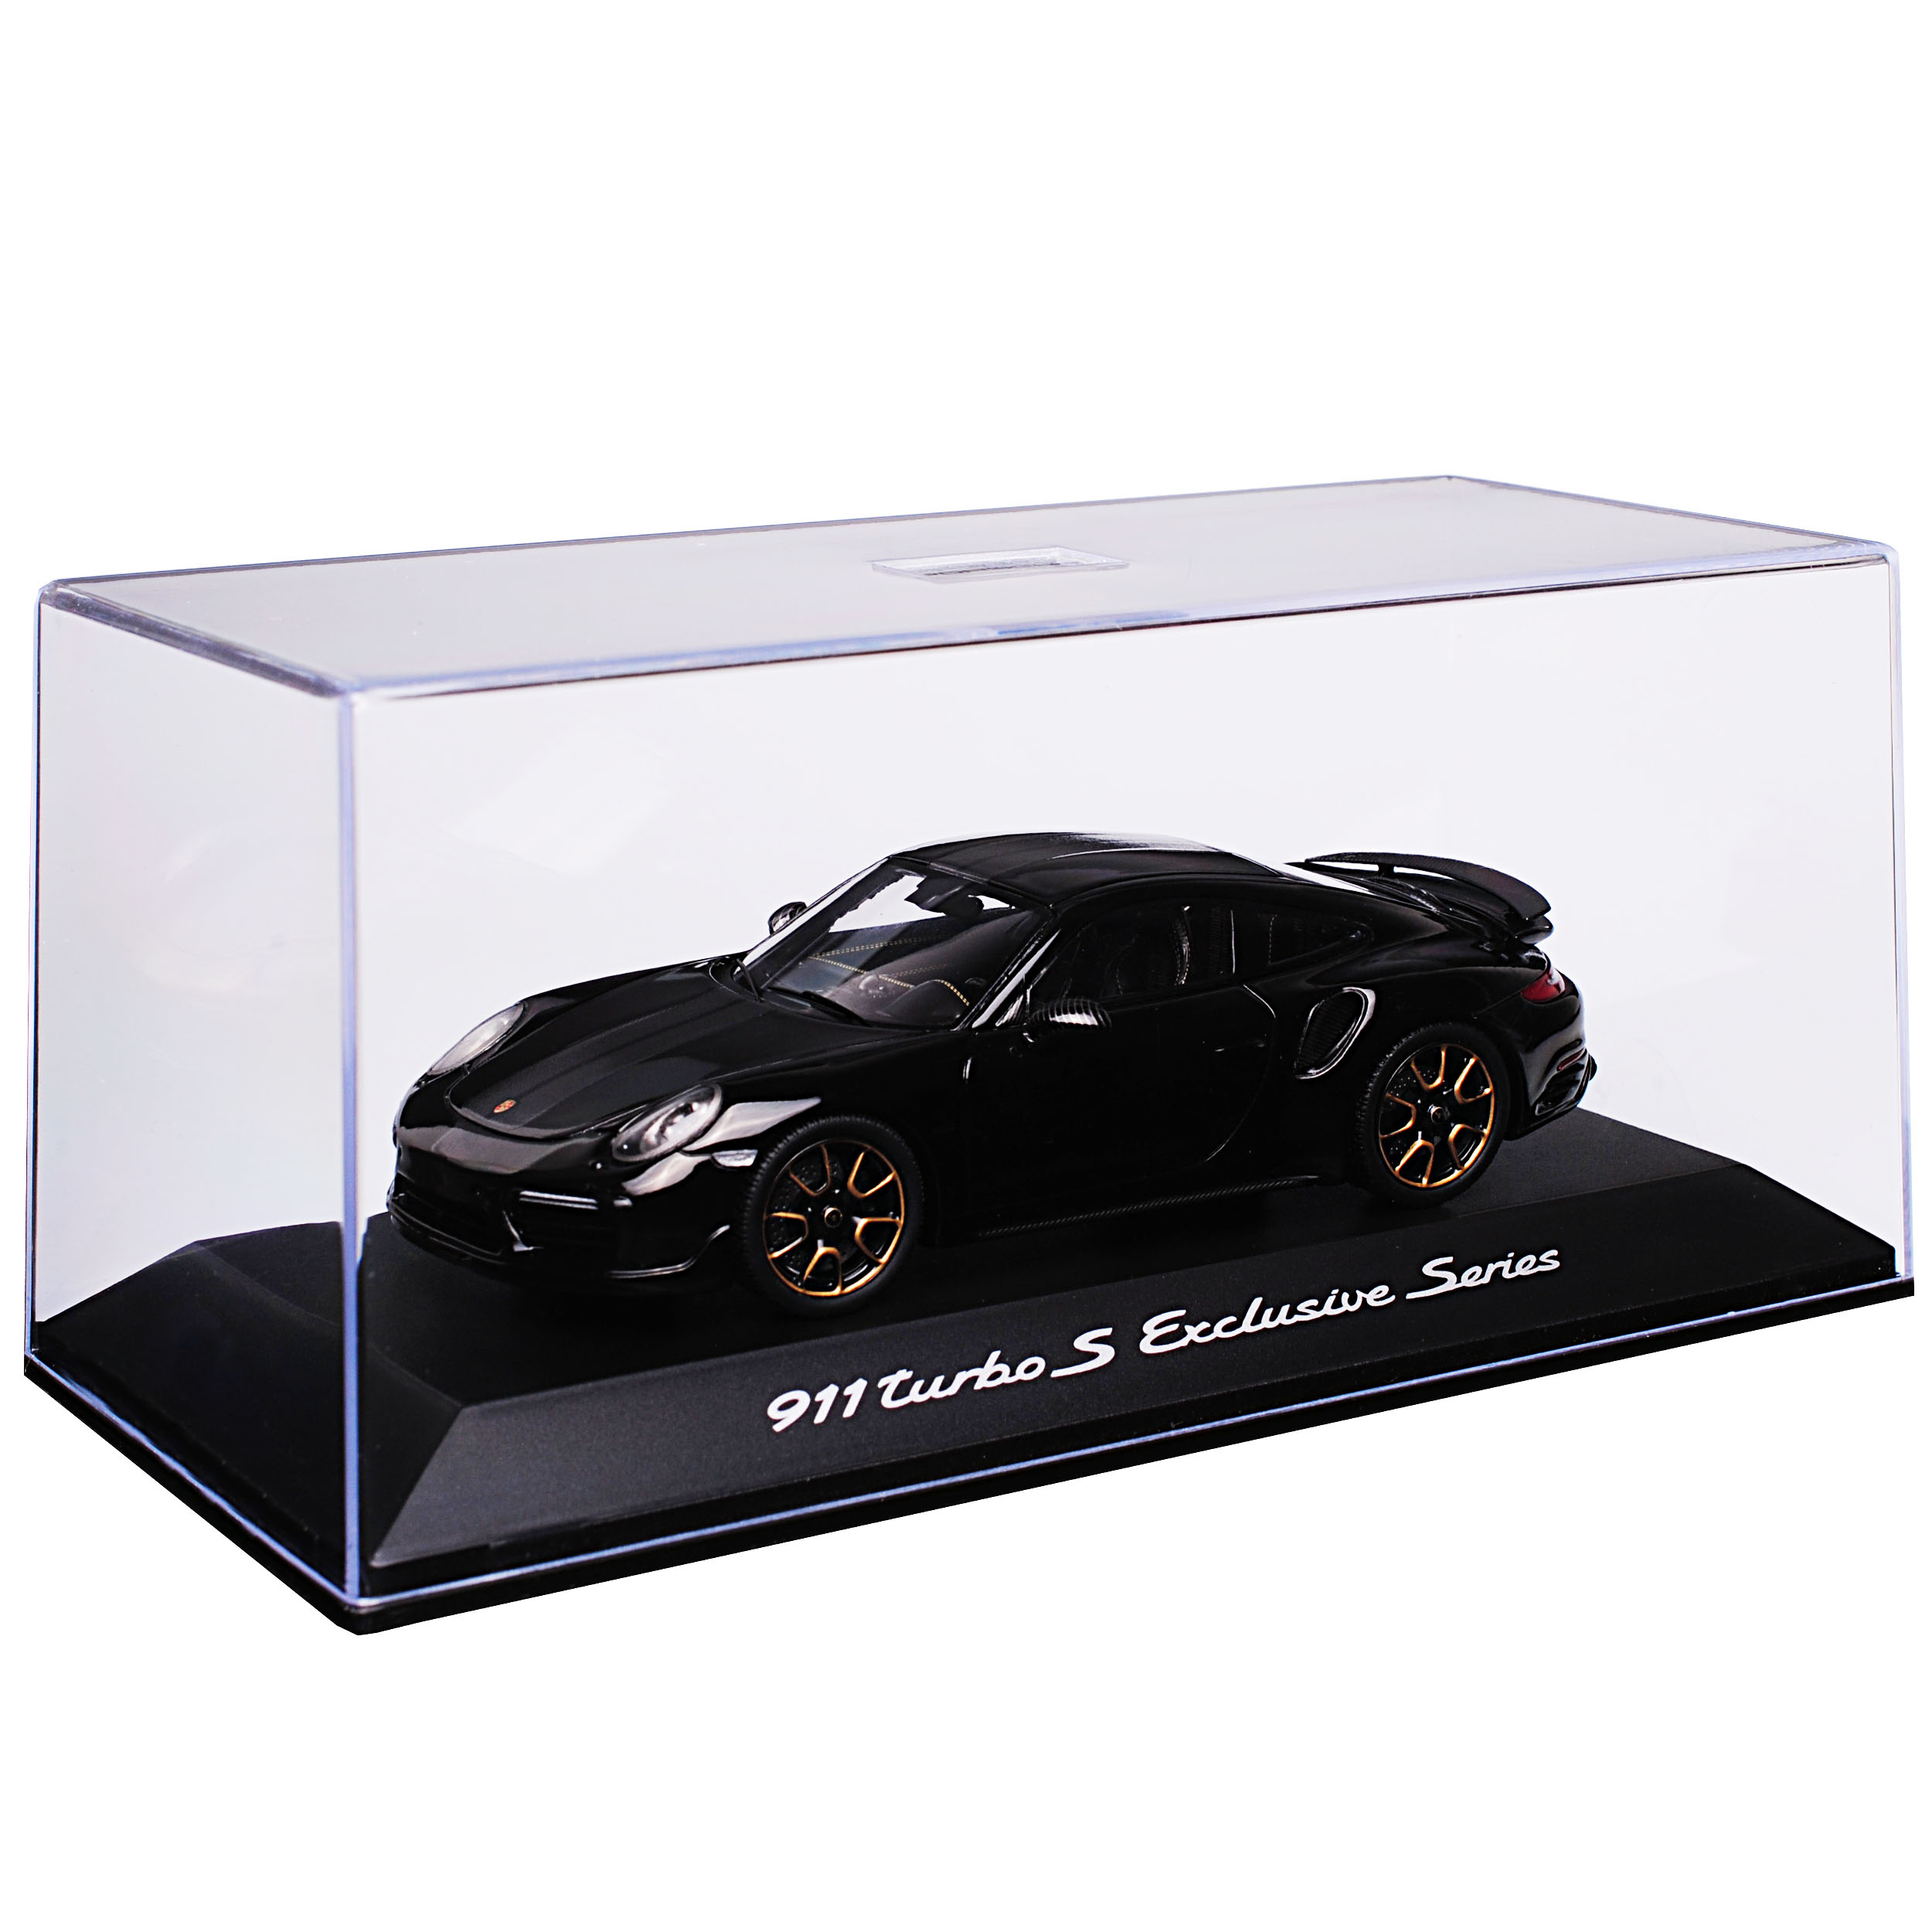 Porsche 911 911 911 991 II Turbo S Exclusive Series black Modell ab 2012 Ab Facelift.. ddd6ef